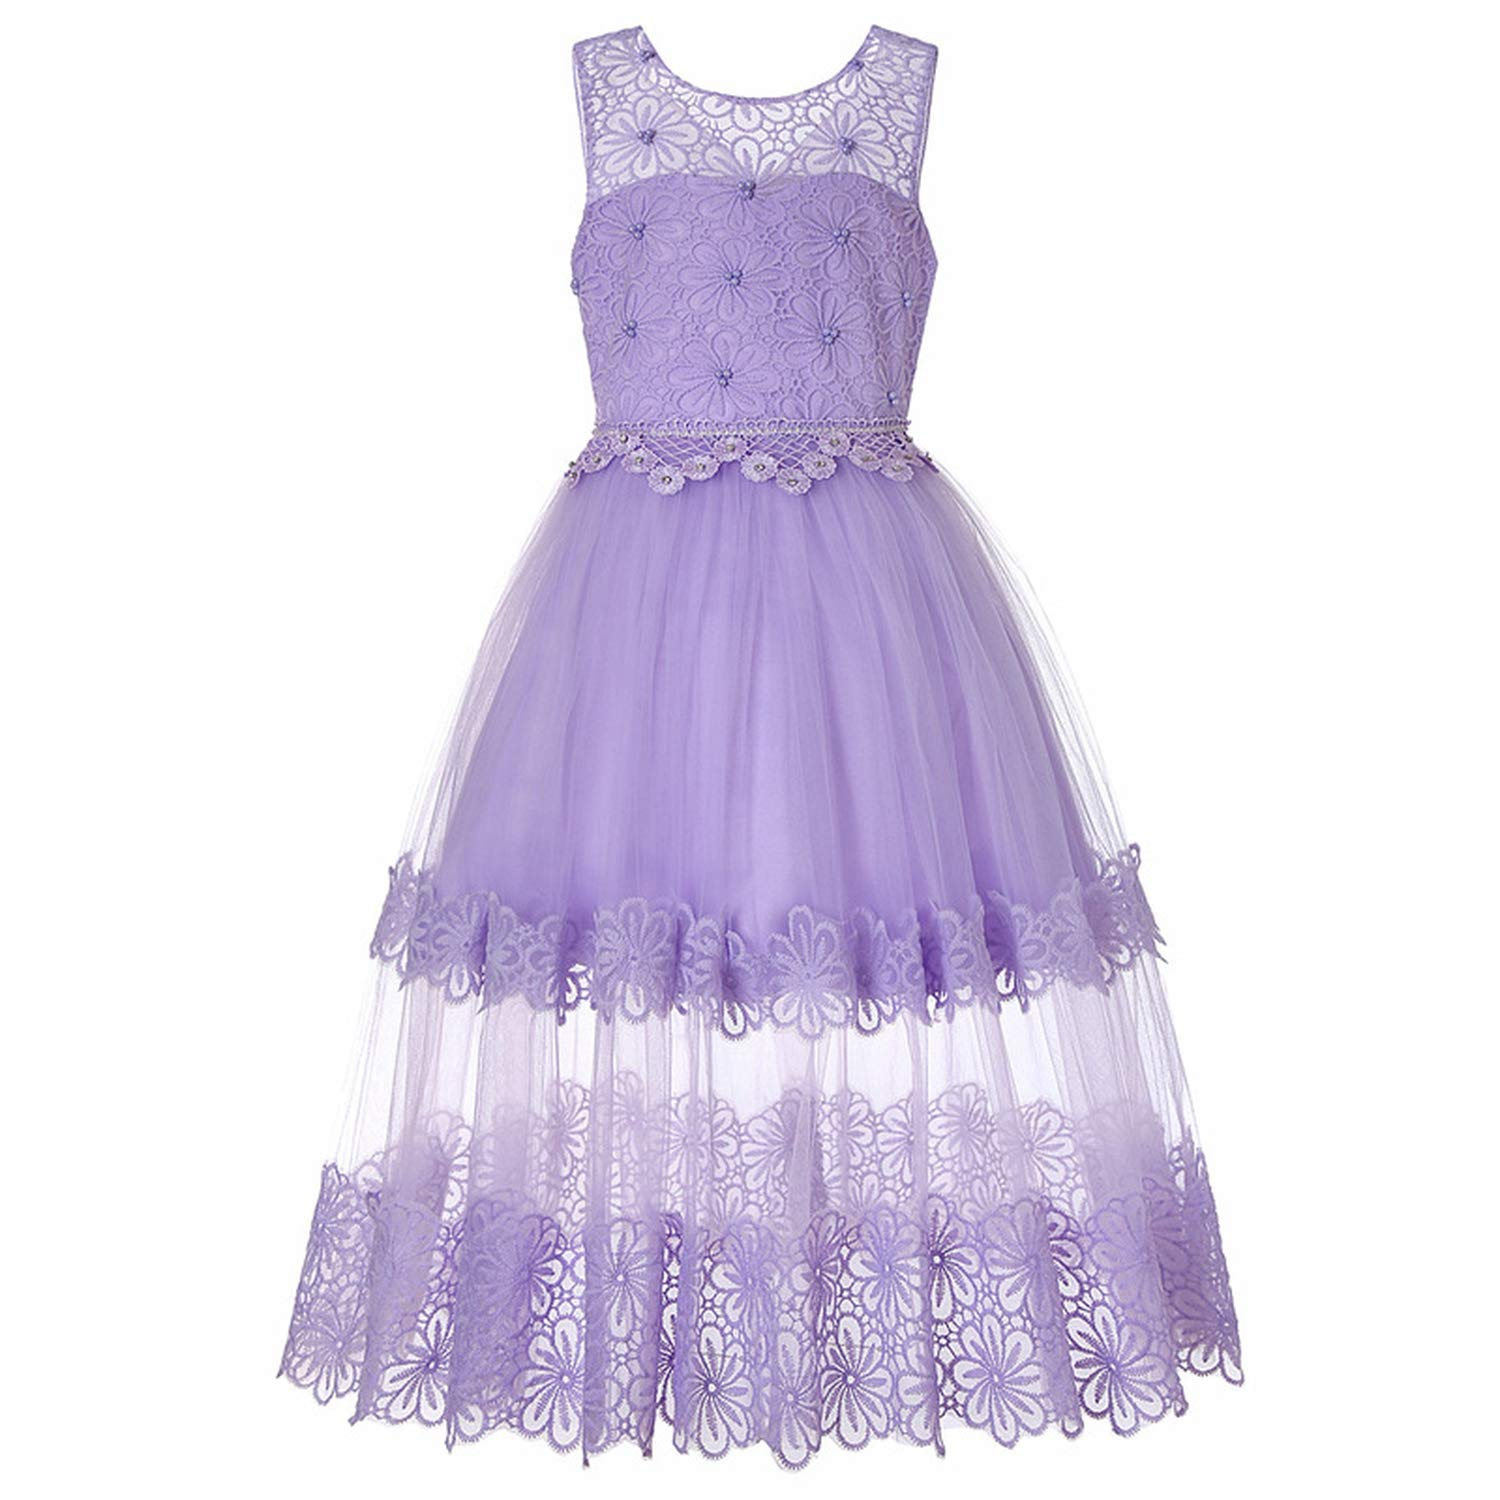 Kids Dresses for Girls Clothes Chiffon Girls Dress Wedding Birthday Party Costume for Kidss,Purple,10